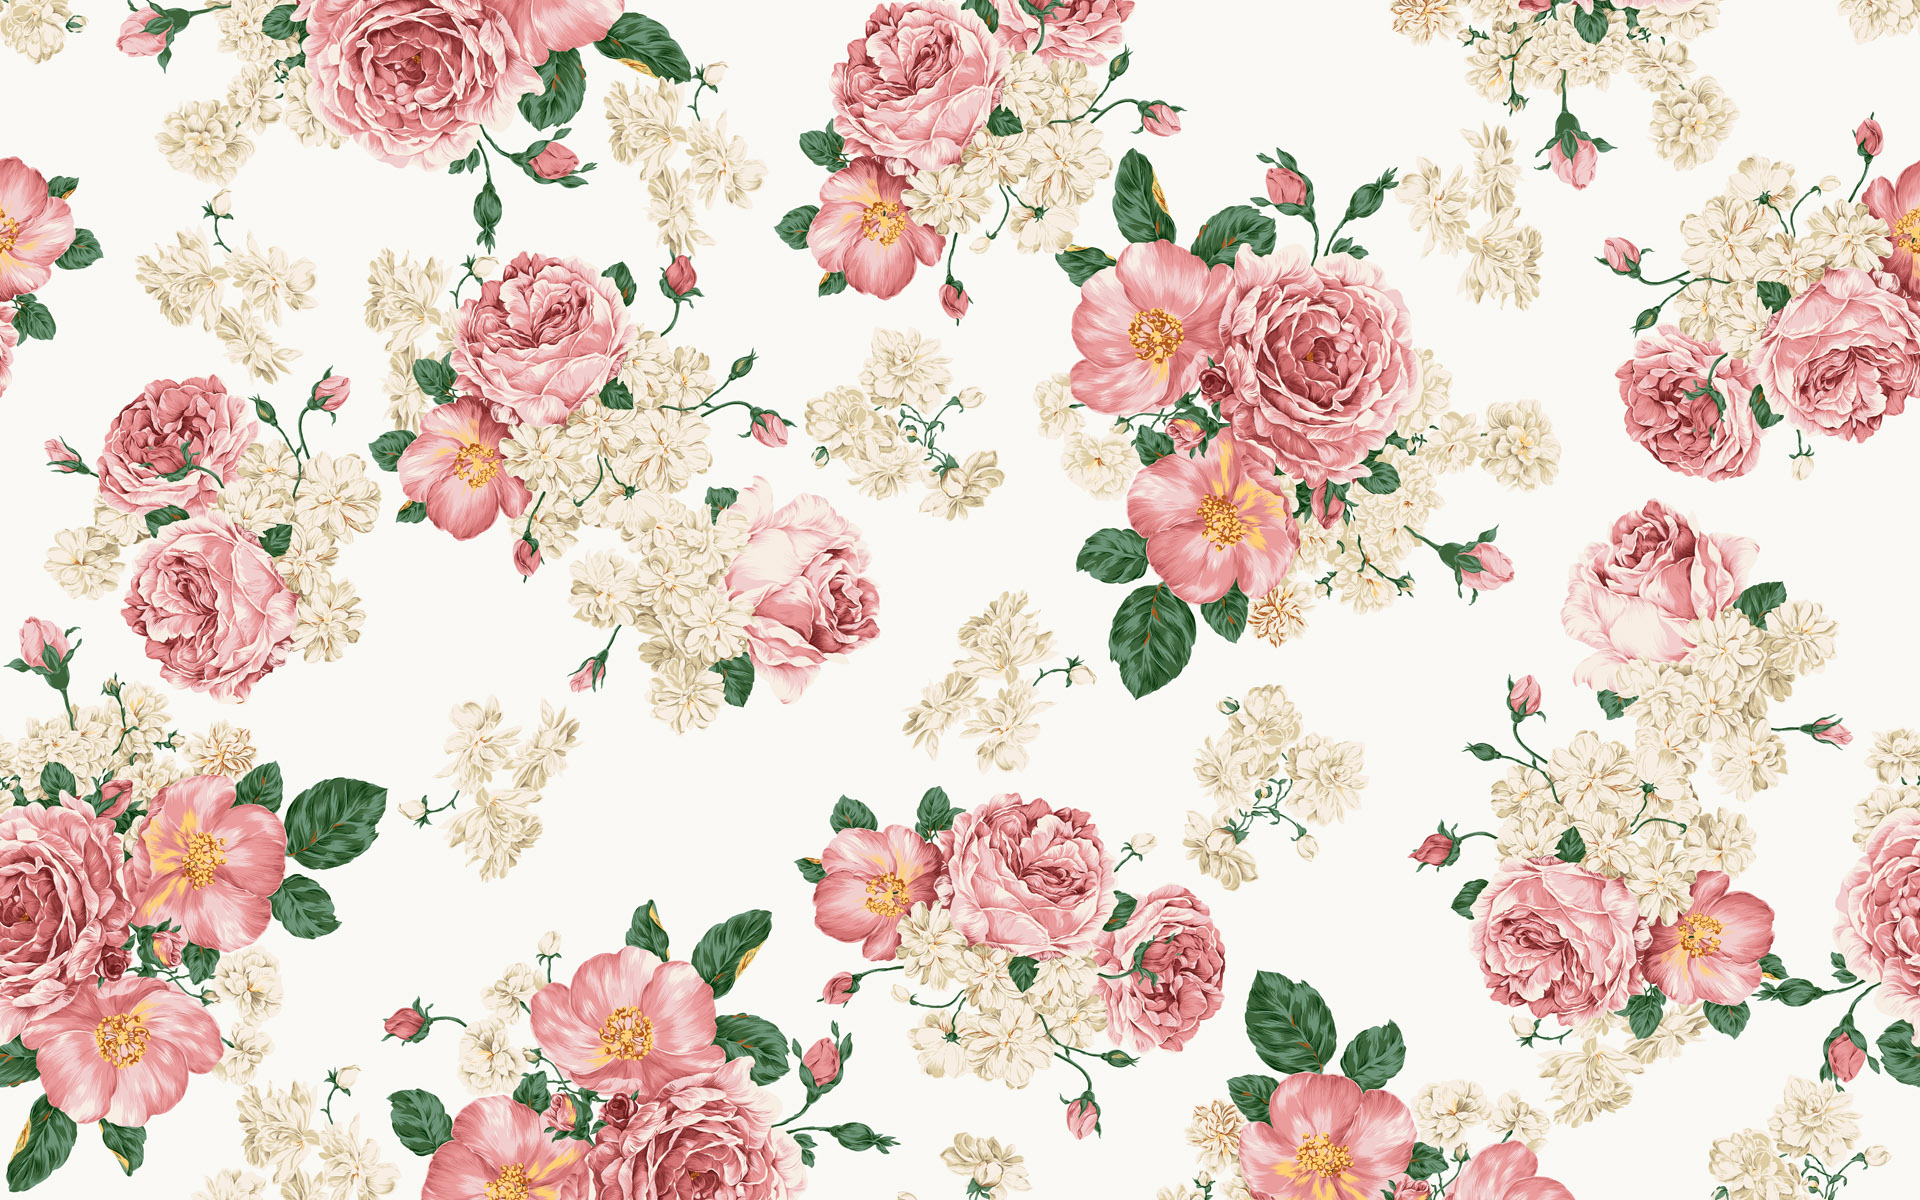 Free Floral Pattern Design Backgrounds For PowerPoint - Flower PPT ...